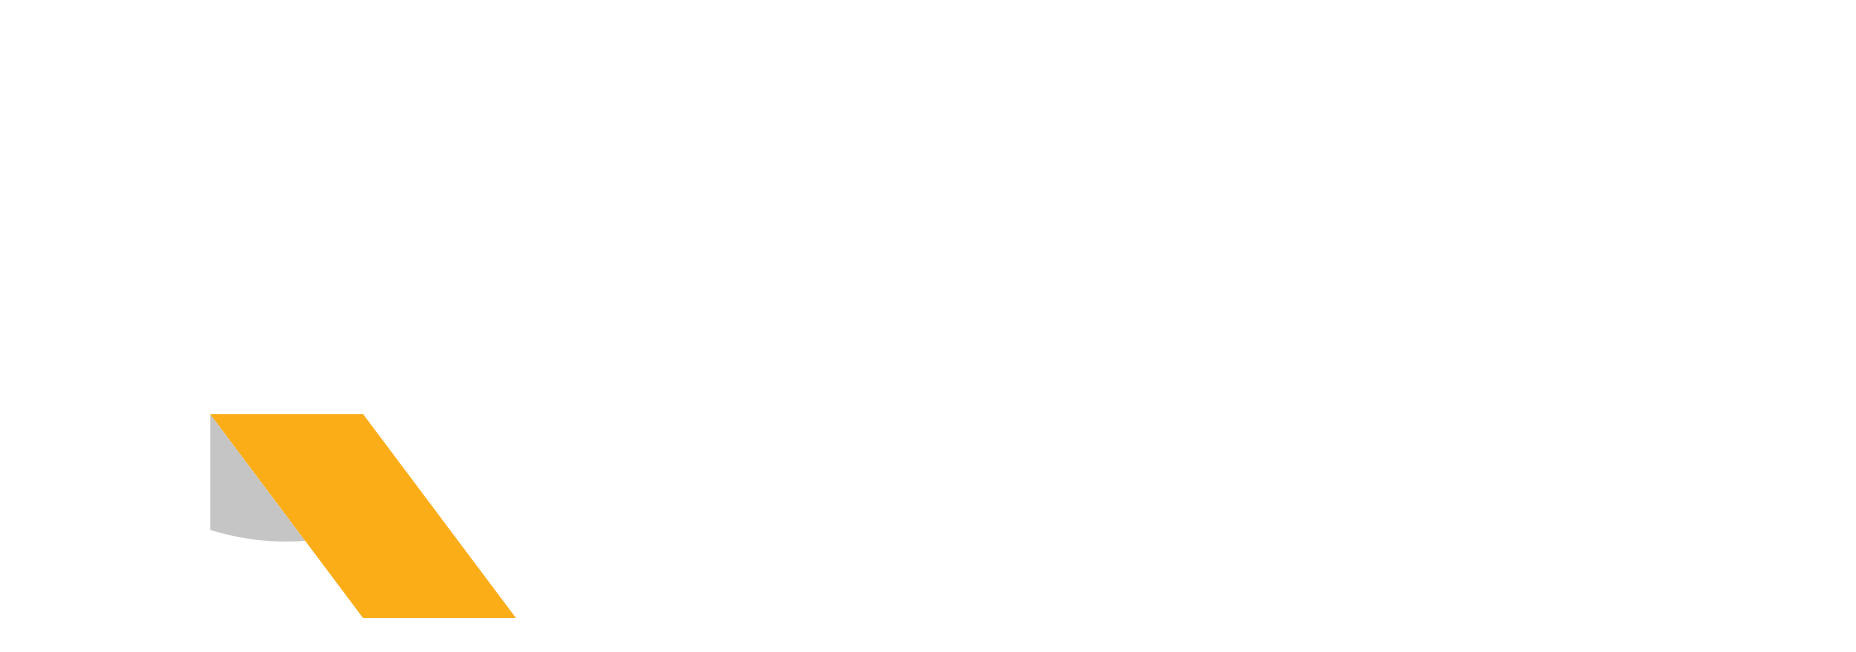 Q Education Group